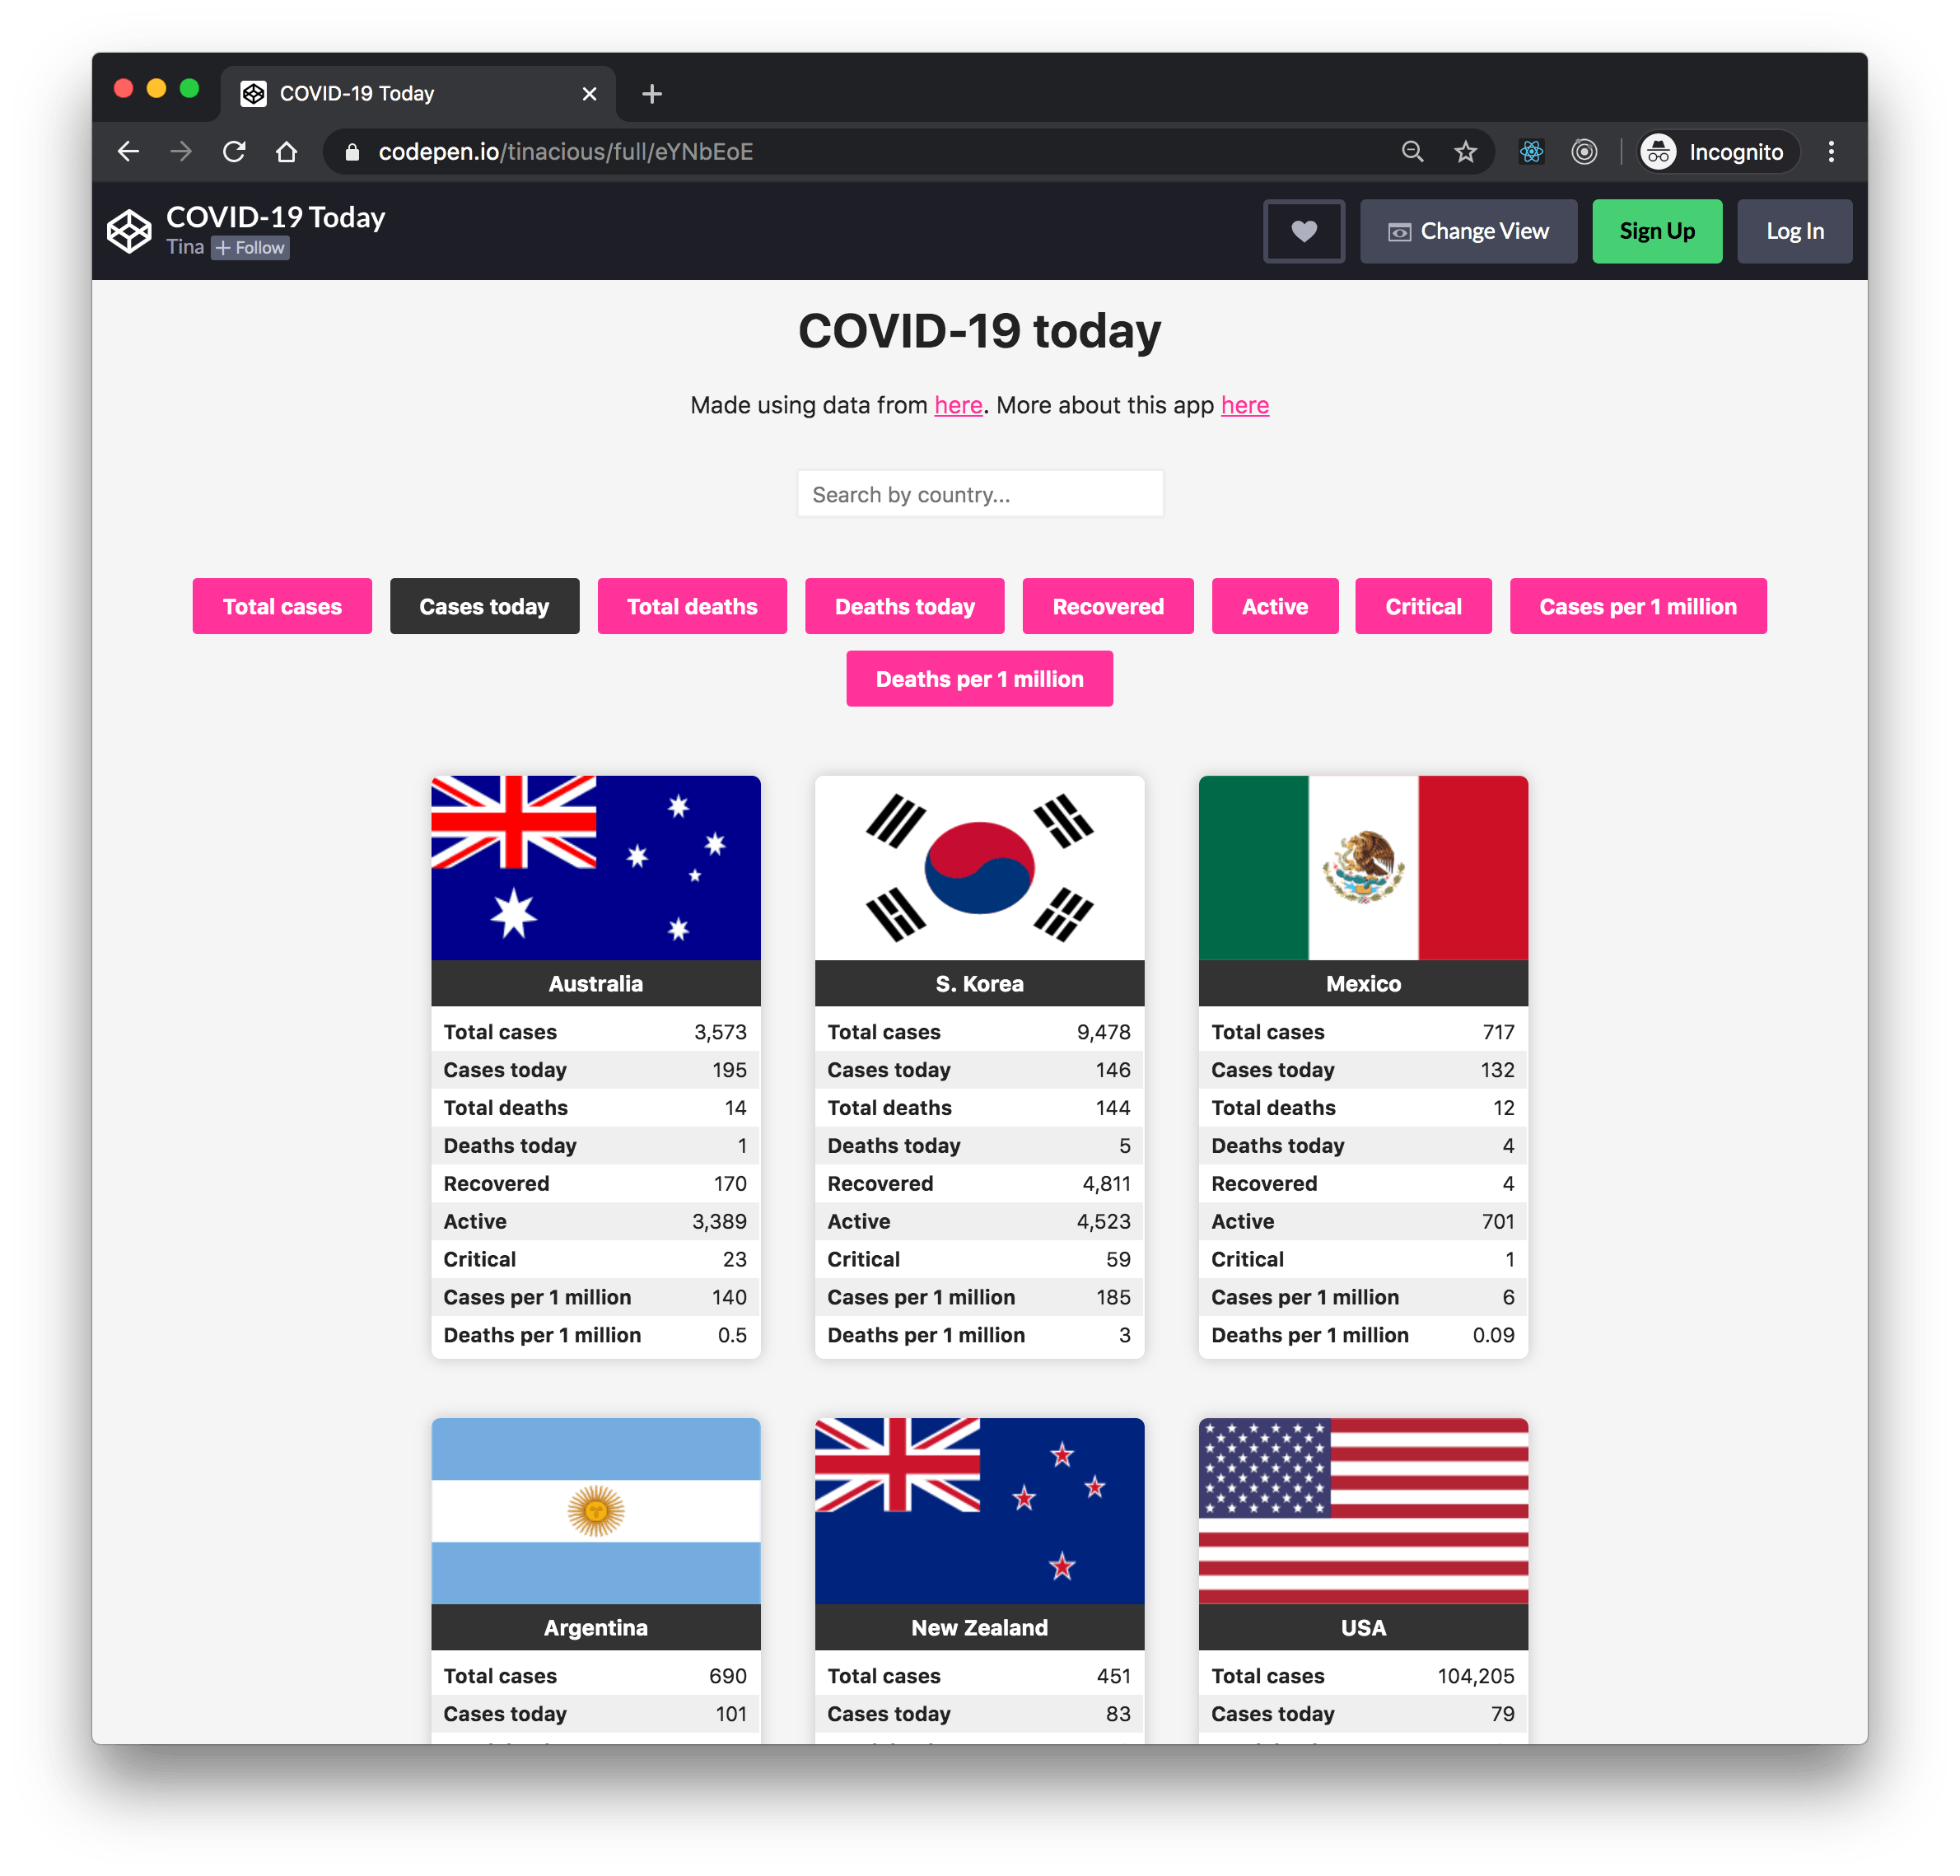 COVID-19 data by country, sorted by default criteria for most confirmed cases today